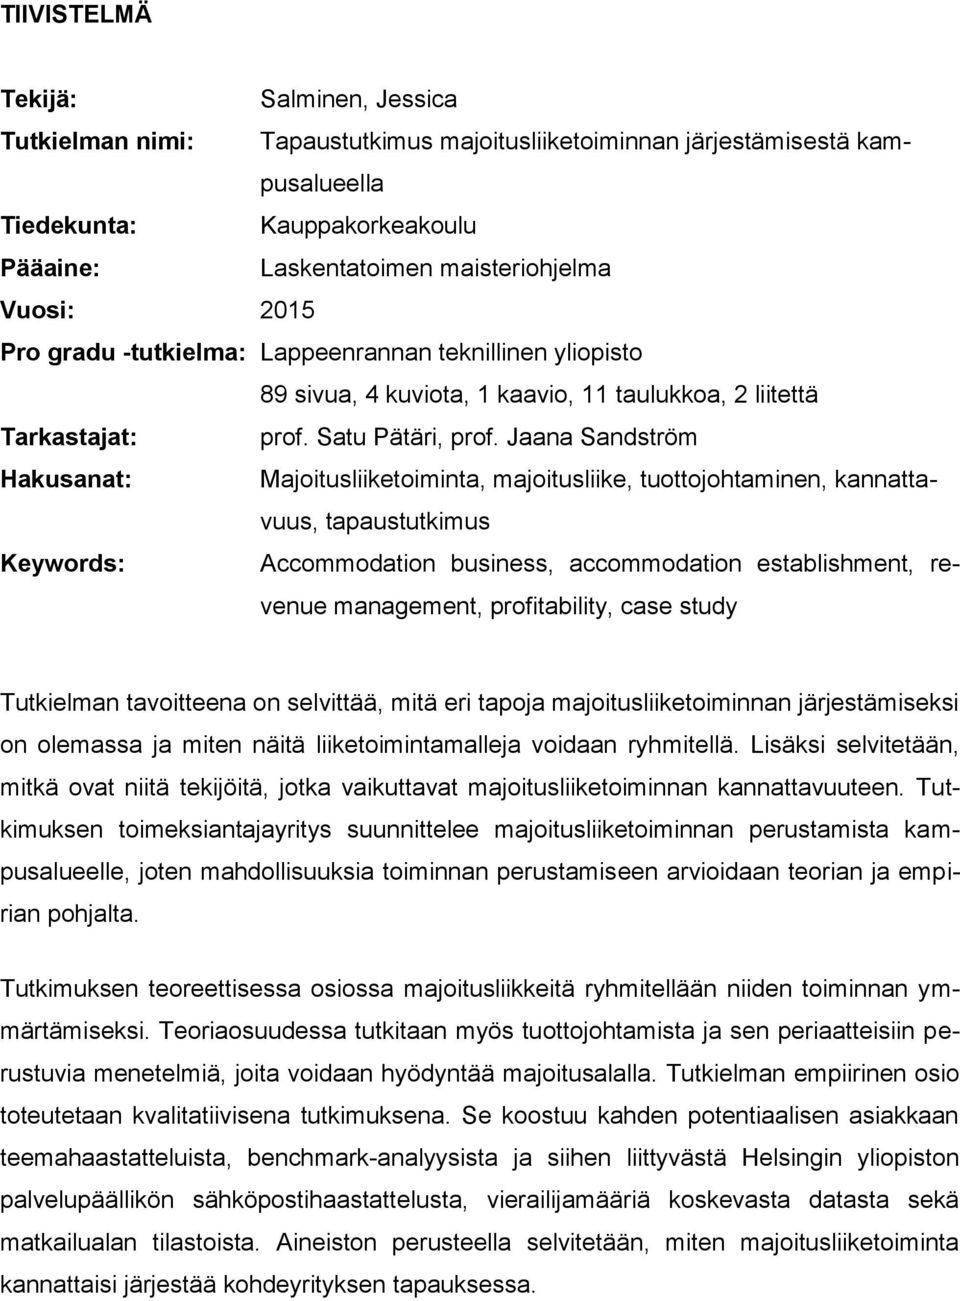 Jaana Sandström Hakusanat: Majoitusliiketoiminta, majoitusliike, tuottojohtaminen, kannattavuus, tapaustutkimus Keywords: Accommodation business, accommodation establishment, revenue management,